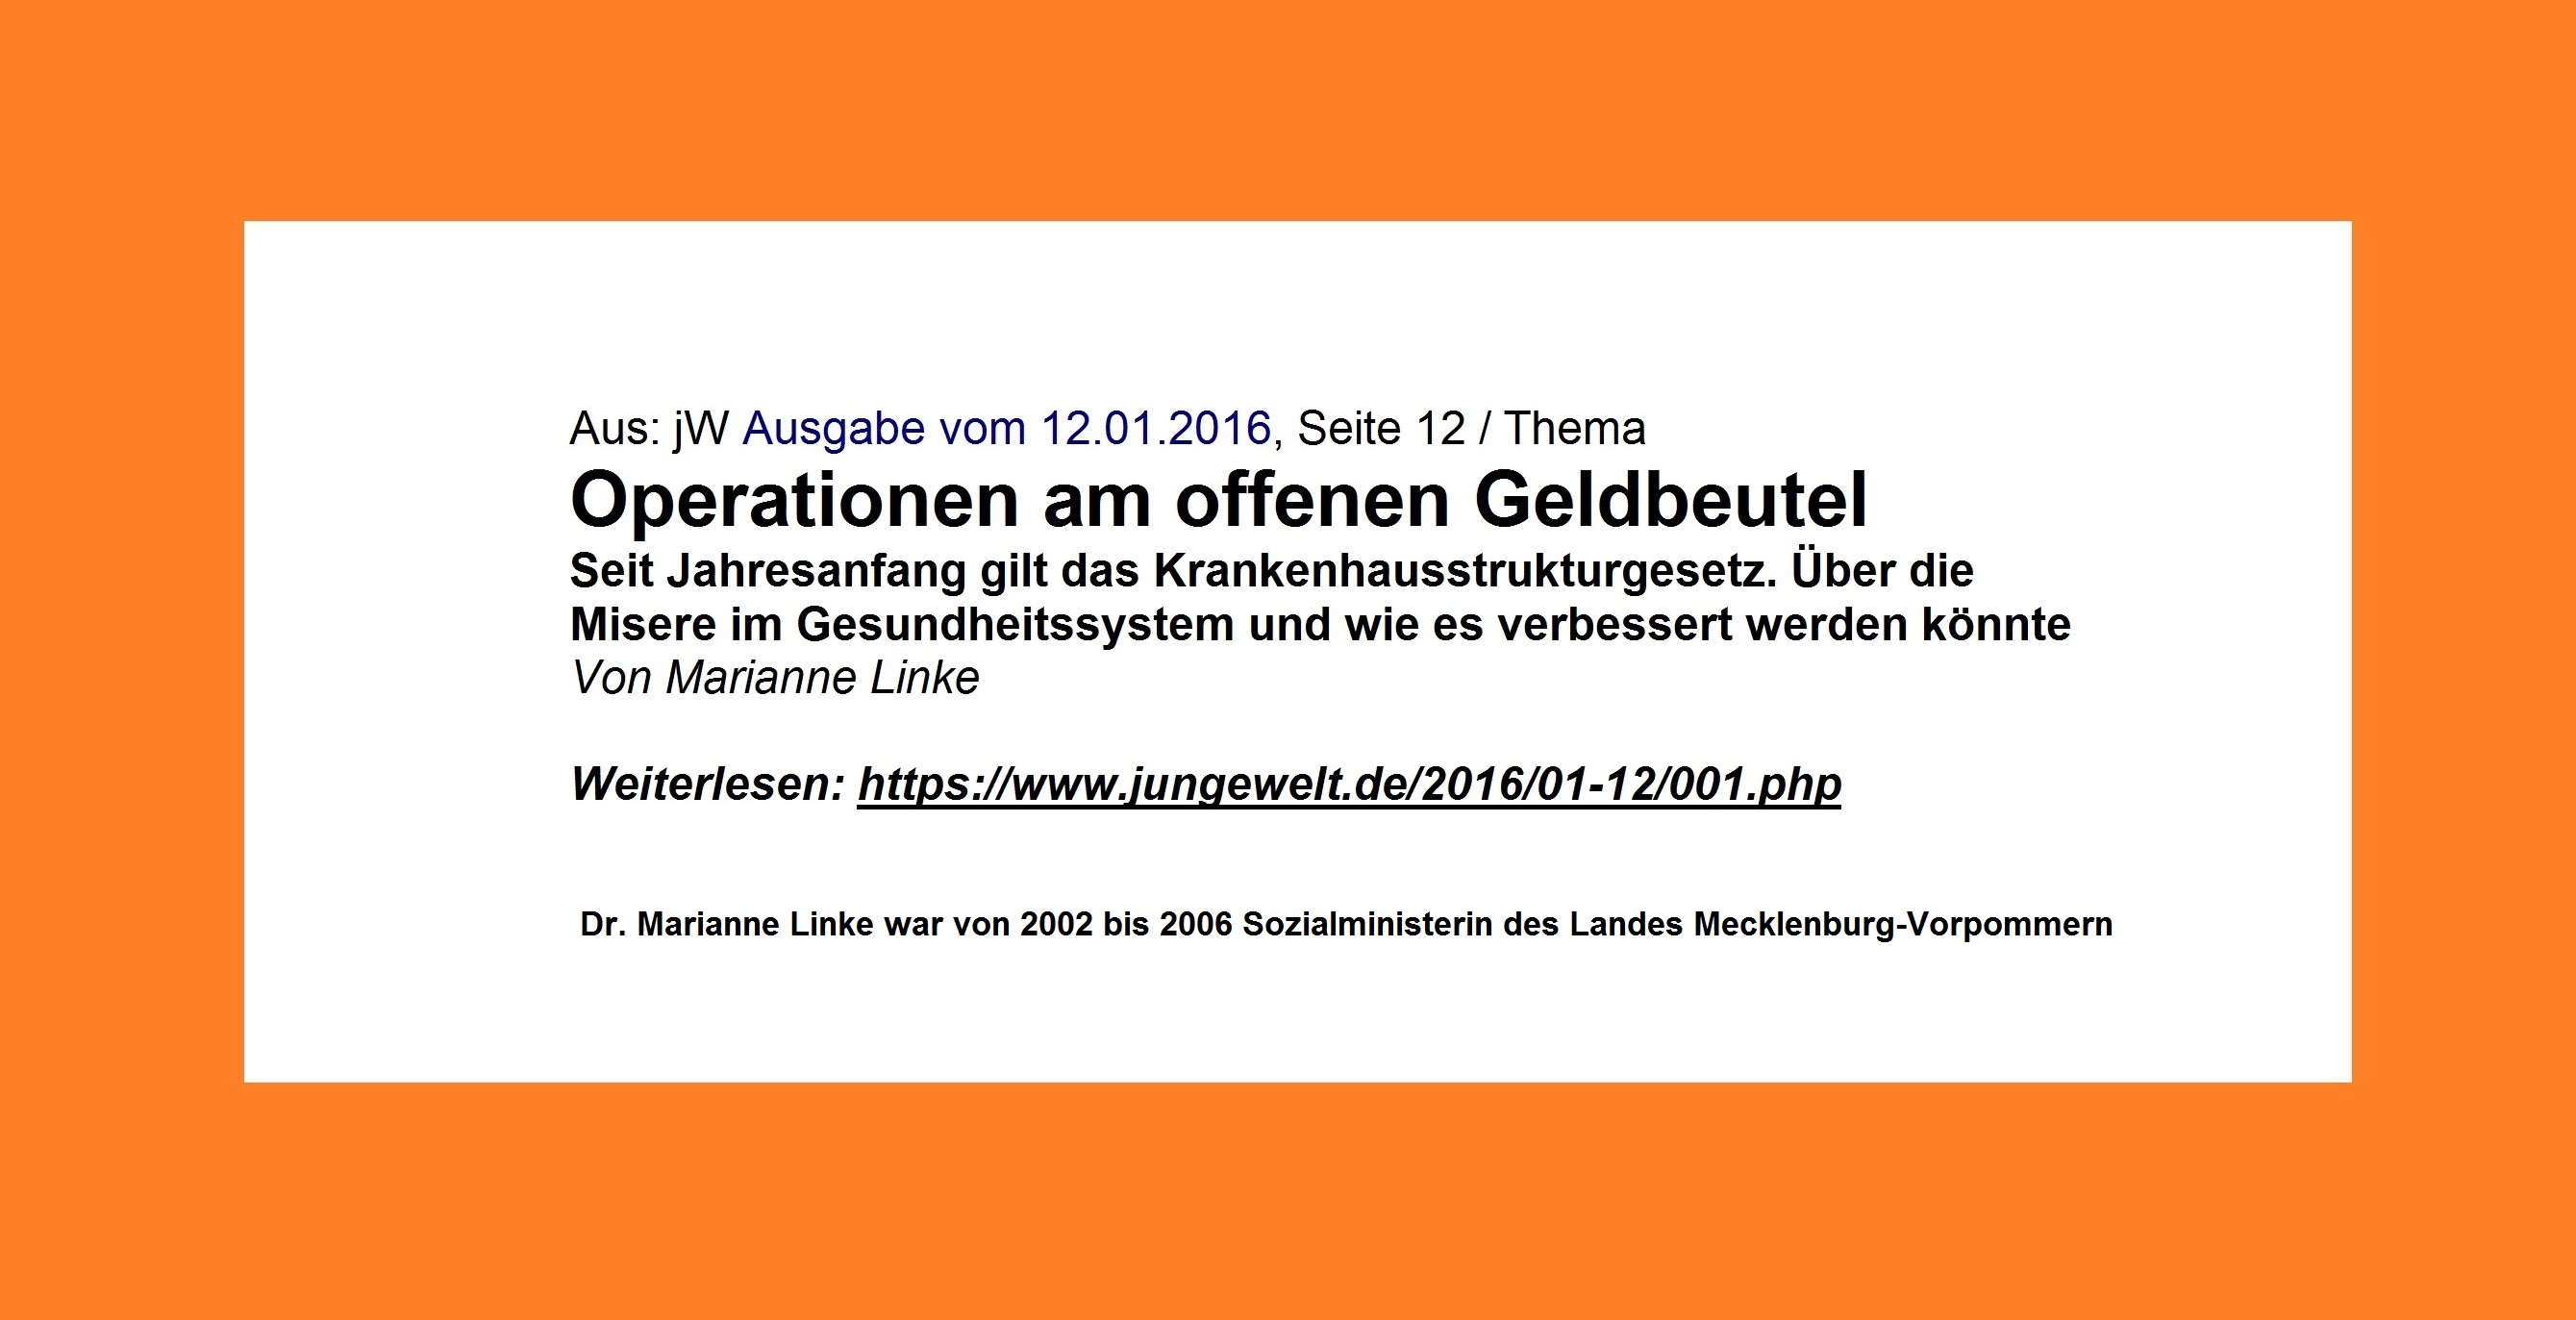 Aus: jW Ausgabe vom 12.01.2016, Seite 12 / Thema Operationen am offenen Geldbeutel | Seit Jahresanfang gilt das Krankenhausstrukturgesetz. Über die Misere im Gesundheitssystem und wie es verbessert werden könnte | Von Marianne Linke - Dr. Marianne Linke war von 2002 bis 2006 Sozialministerin des Landes Mecklenburg-Vorpommern